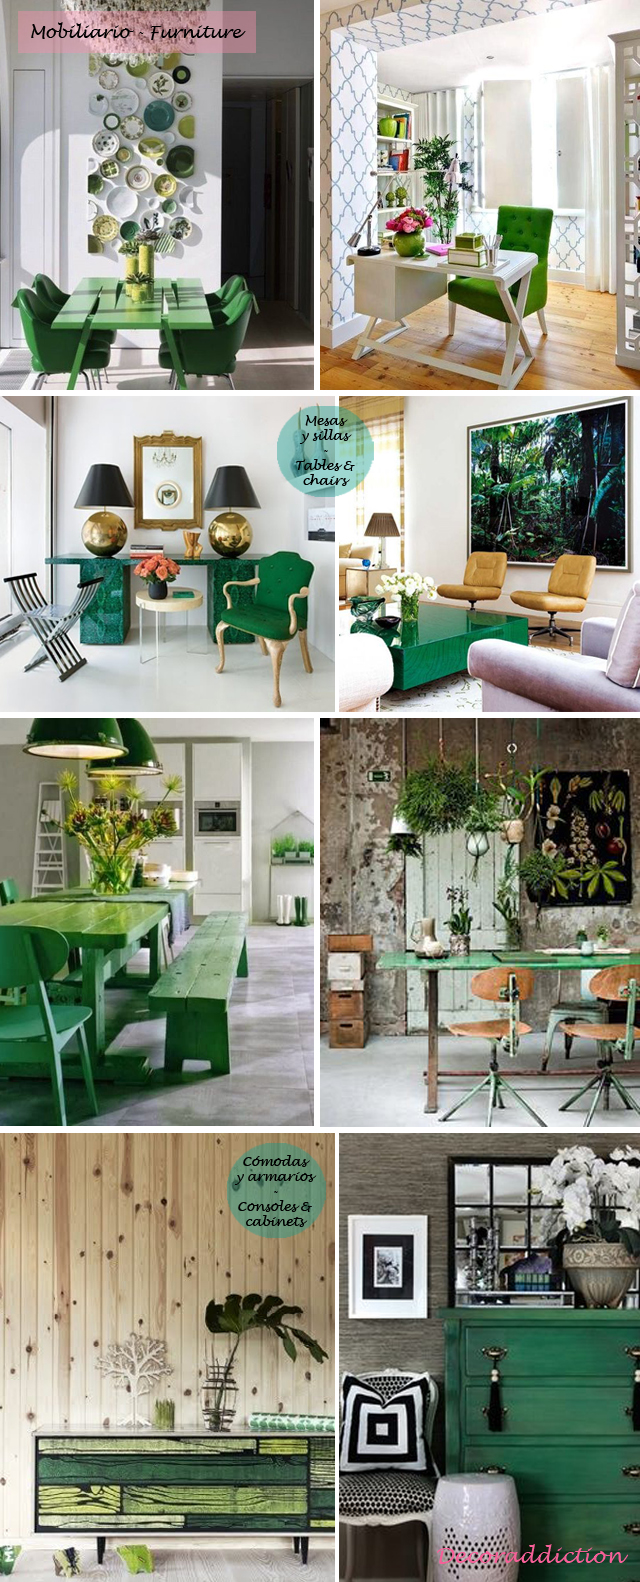 Deja que el verde entre en tu casa - Let the green into your home_mobiliario